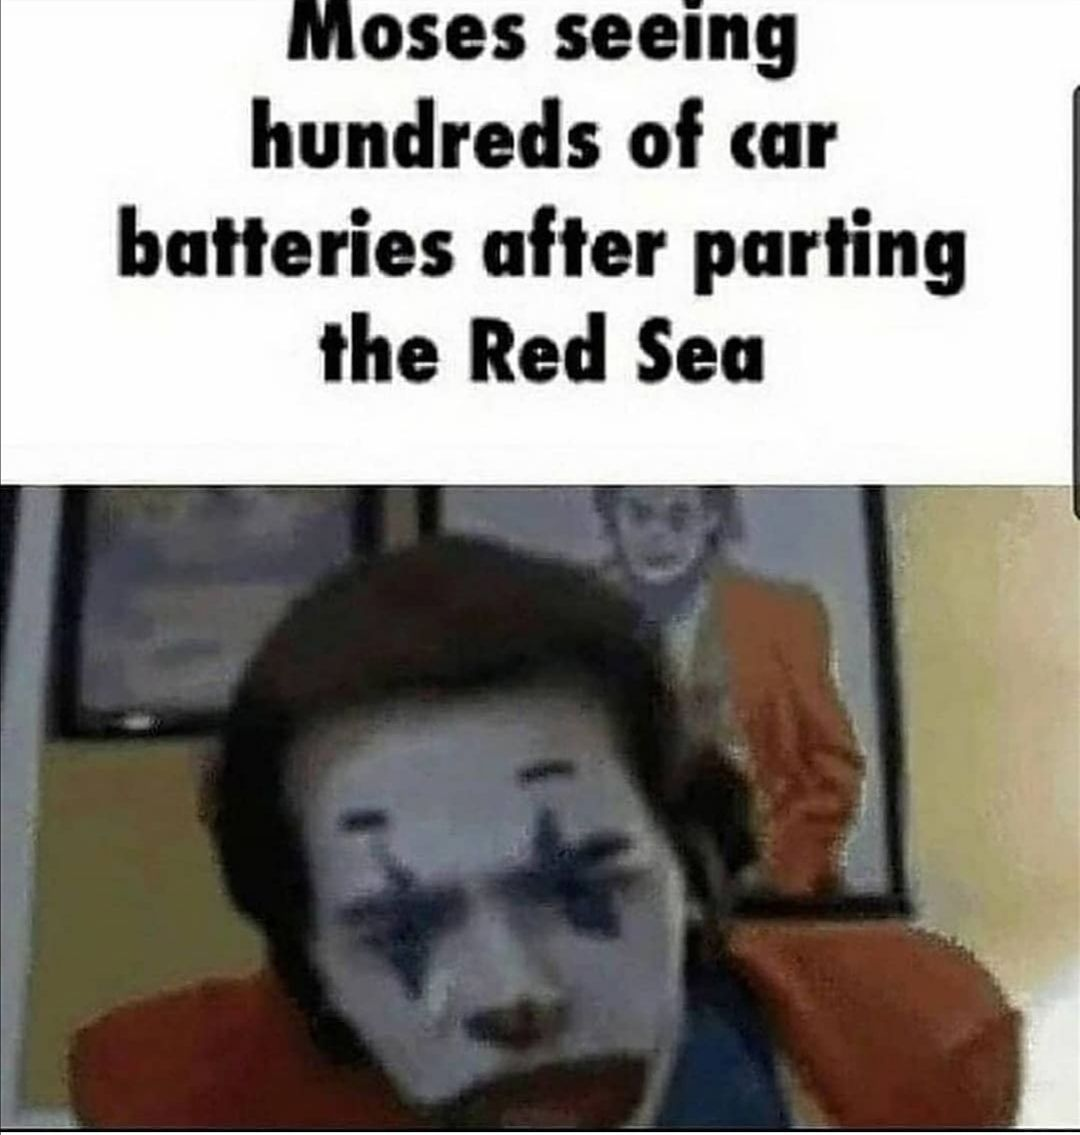 tfw you put hundreds of car batteries BACK in the ocean when unparting it